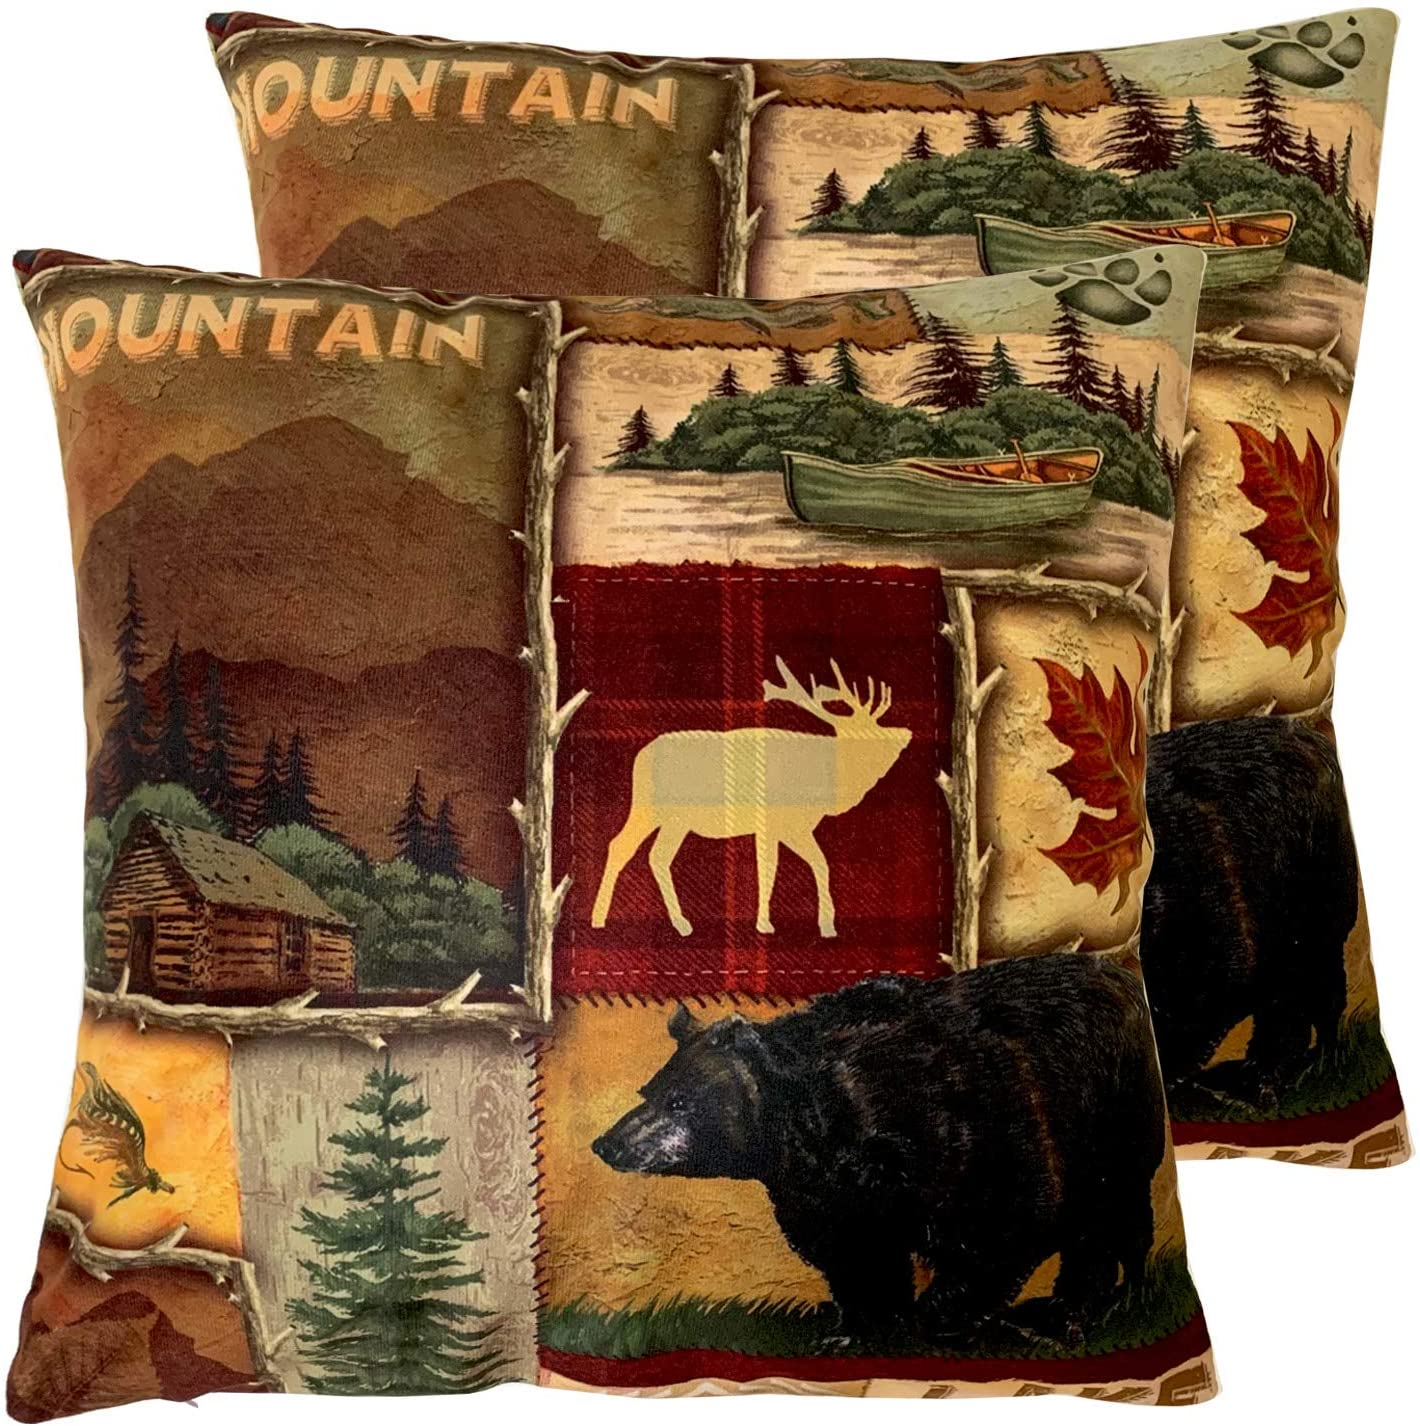 Set of 2 Square 18X18 inch Throw Pillow Cover for Women/Men, Short Plush Pillow Case Cushion Cover for Home Sofa Couch Living Room Car Decor - Rustic Lodge Bear Moose Deer